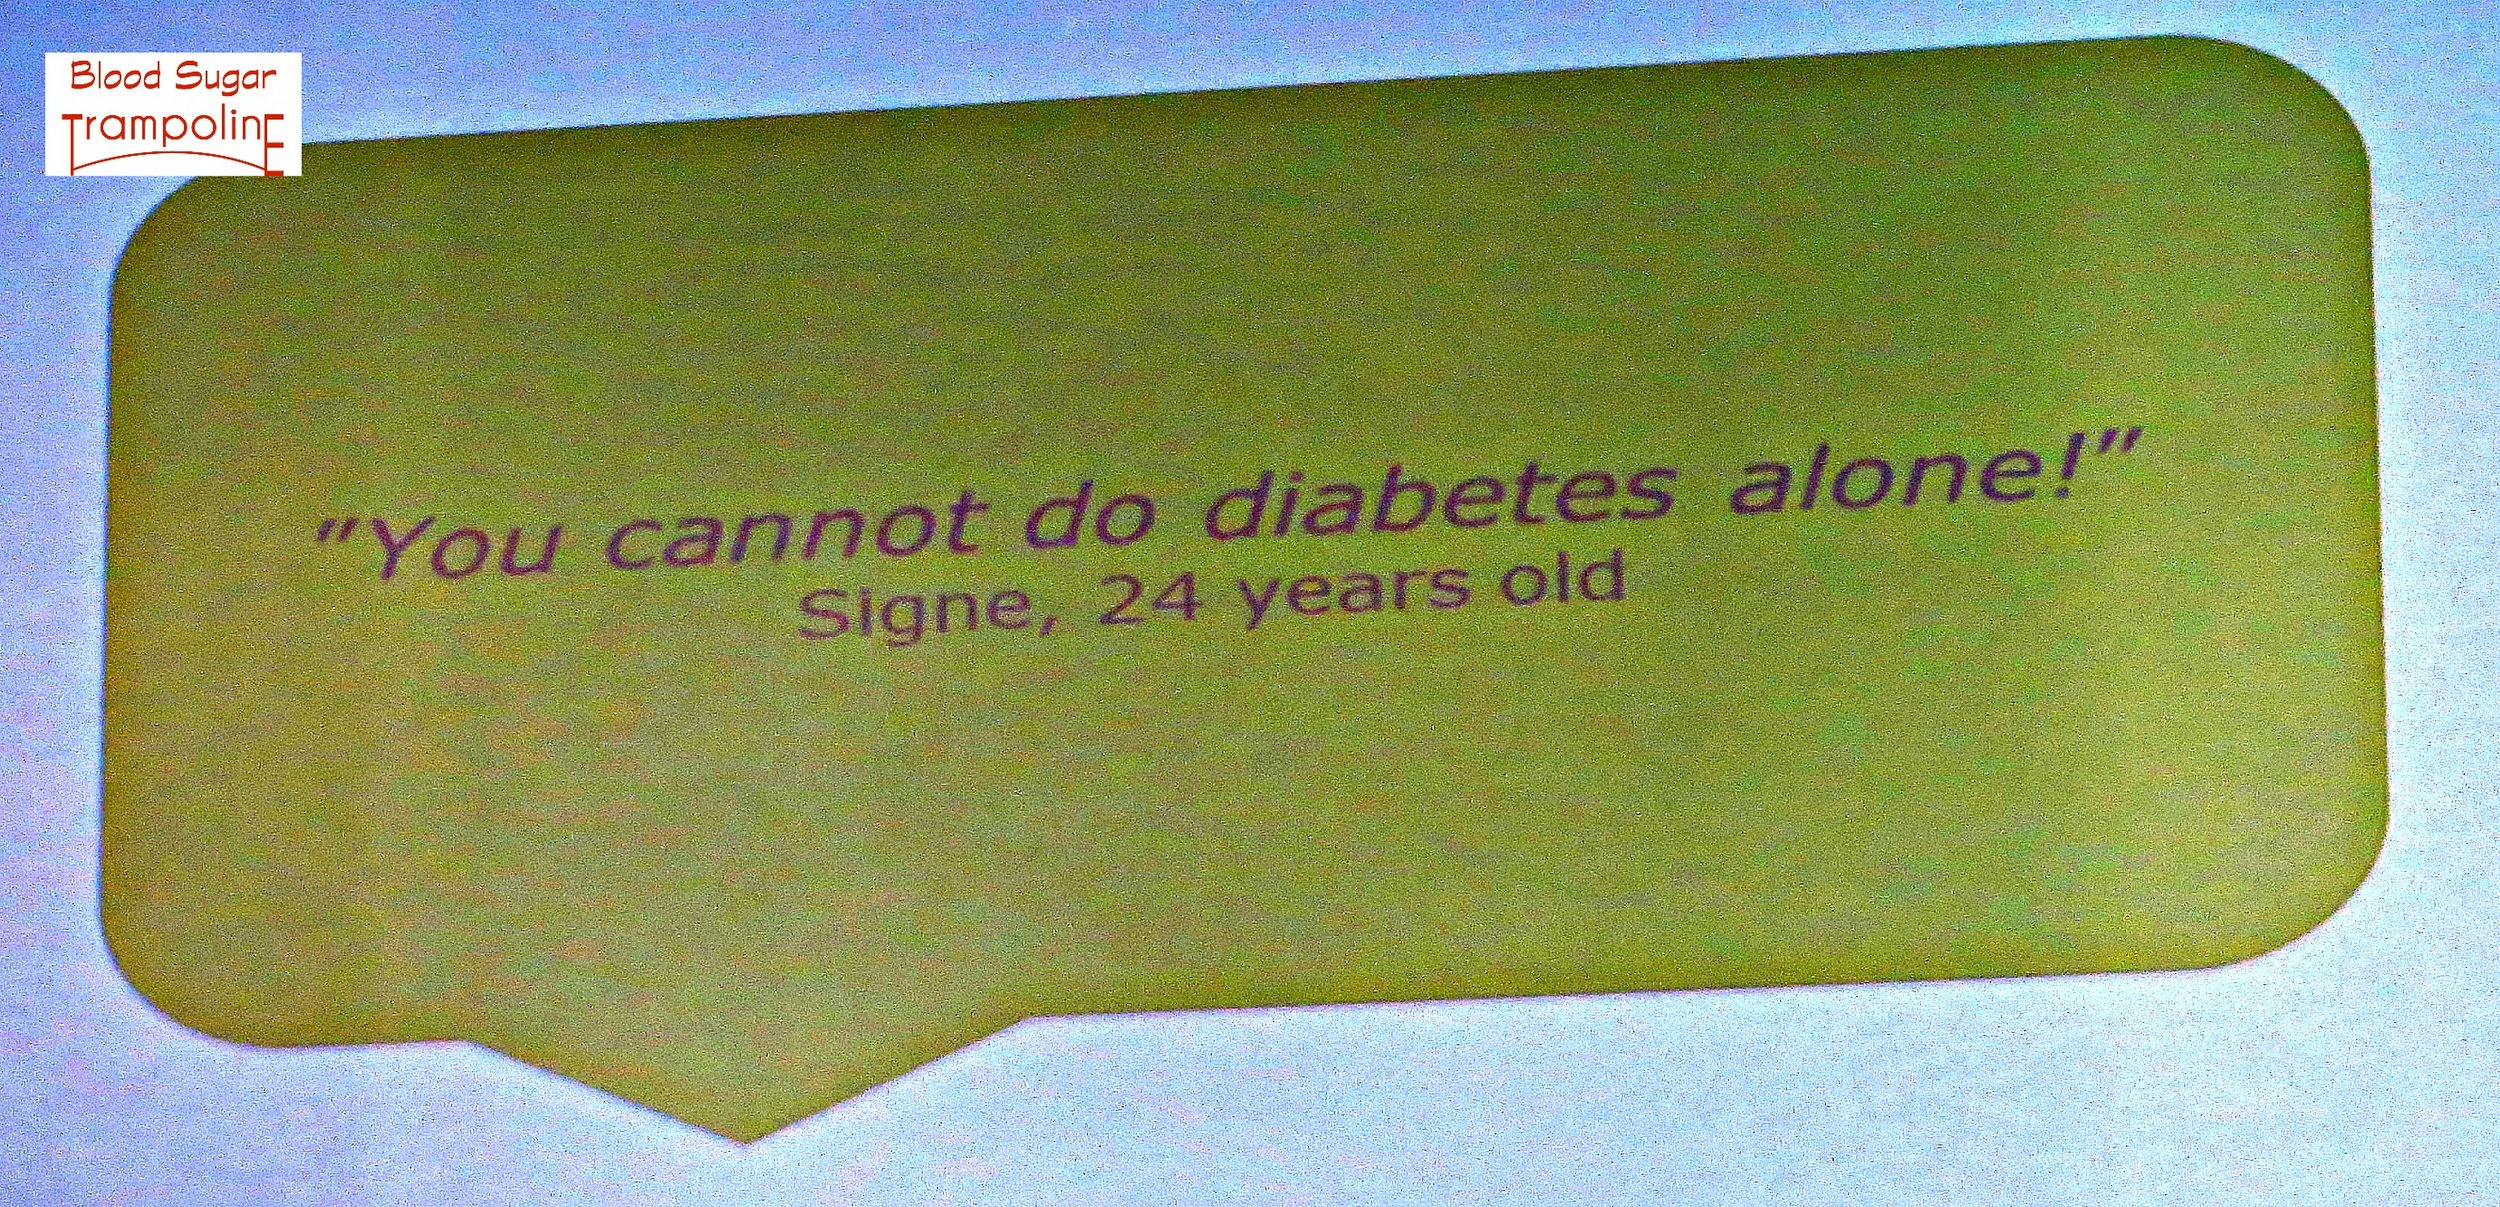 You can't do diabetes alone